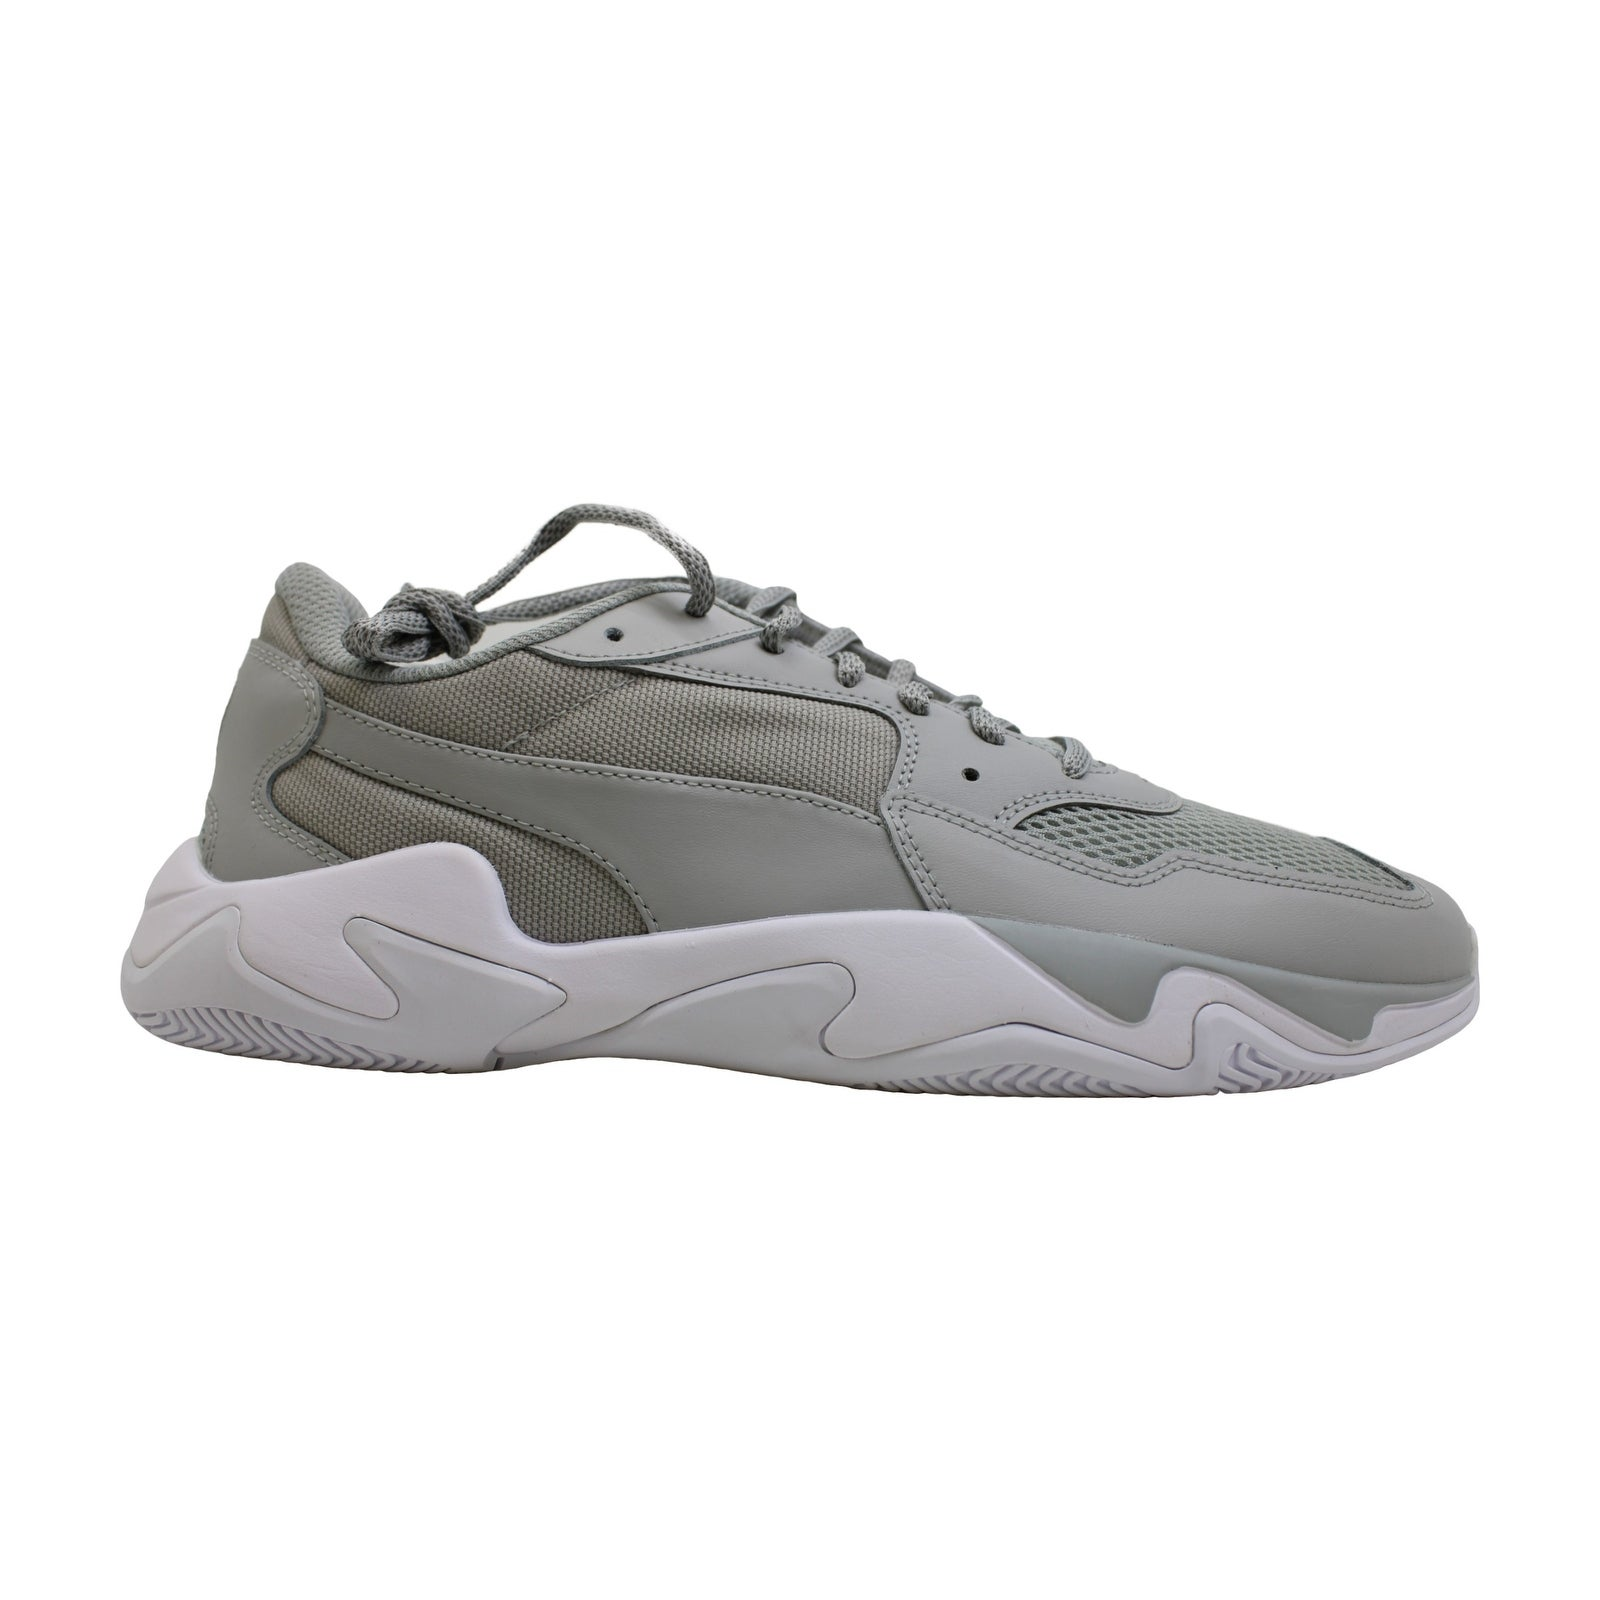 Puma Mens storm pulse Low Top Lace Up Running Sneaker - 10.5